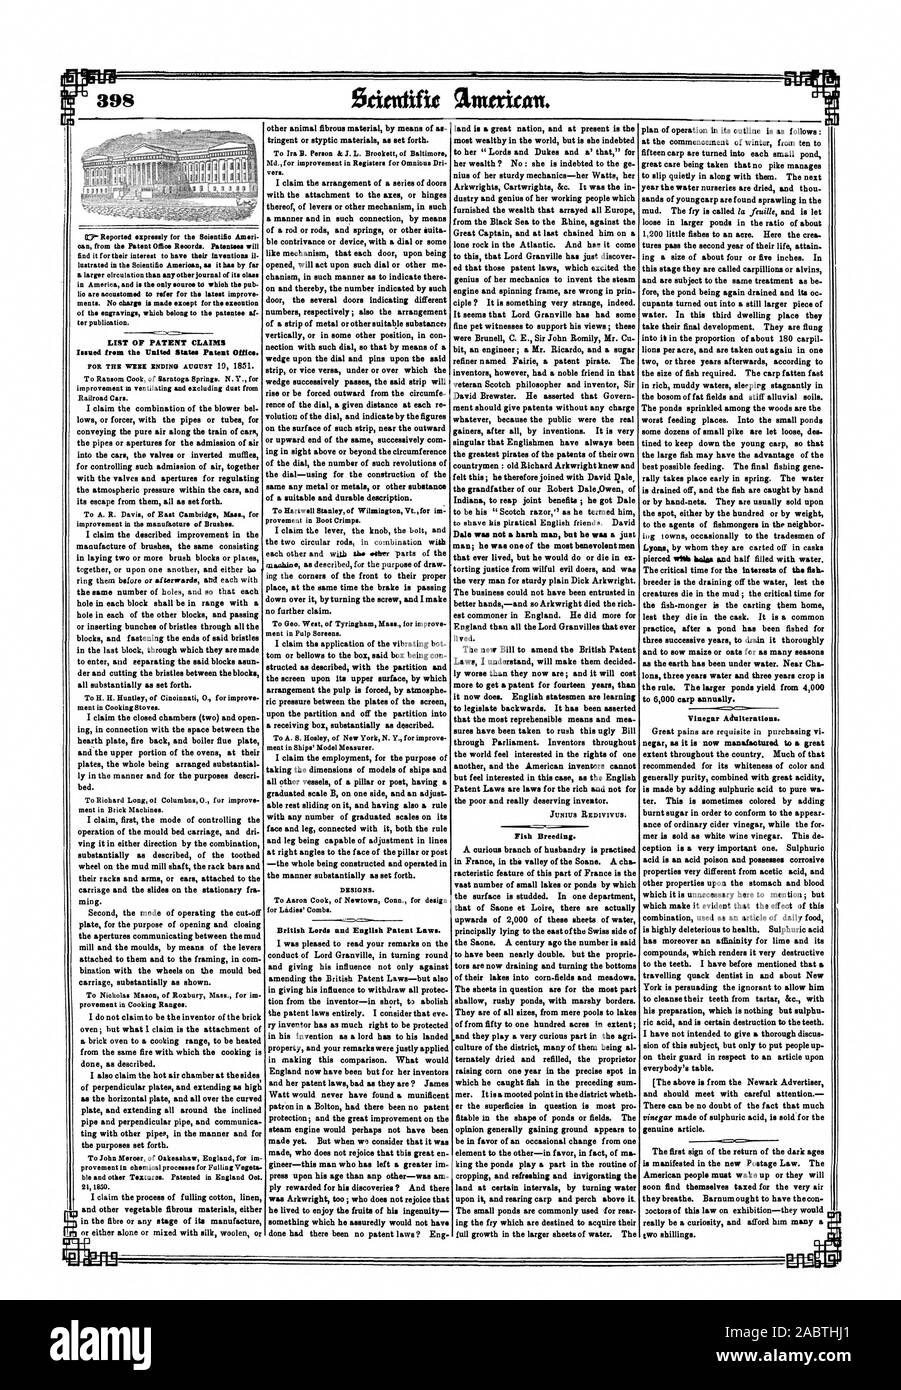 improvement m ventilating and excluding dust from Railroad Cars. To A. R. Davis of East Cambfidge Mass. for improvement in the manufacture of Brushes. To H. H. Huntley of Cincinnati 0. for improve ment in Cooking Stoves. To Richard Long of Columhns 0. for improve ment in Brick Machines. To Nicholas Mason of Roxbury Mass. for im provement in Cooking Ranges. To John Mercer of Oakeashaw England for im provement in chemical processes for Fulling Vegeta ble and other Textures. Patented in England Oct. 21 MO. 'AY To Ira B. Person & J. L. Brookett of Baltimore Md. for improvement in Registere for Stock Photo